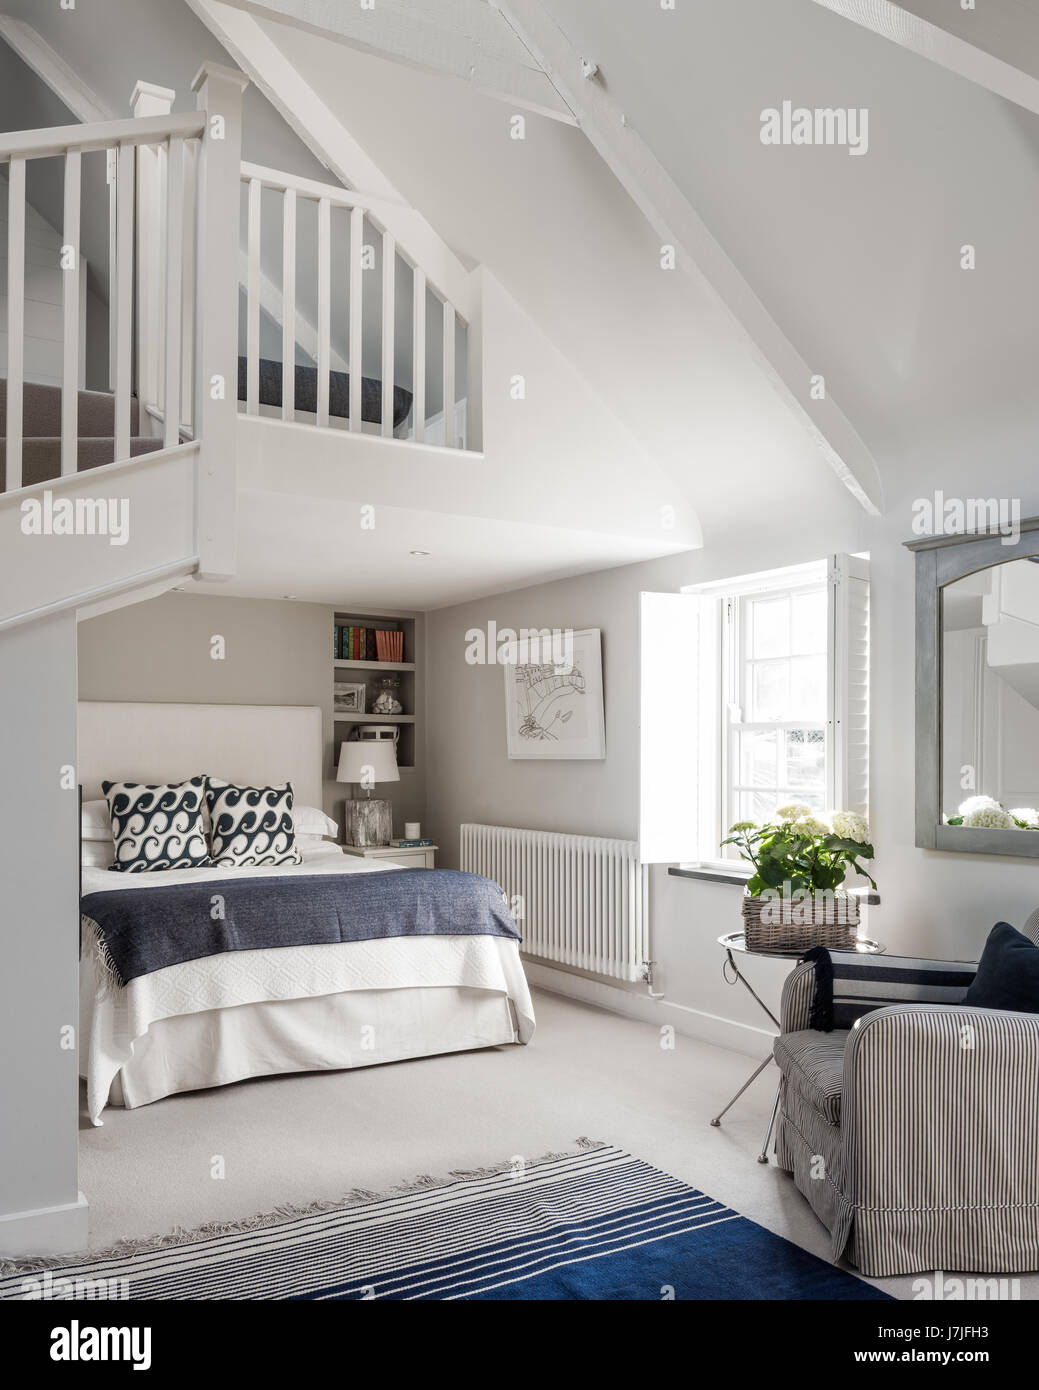 Mezzanine Bedroom High Resolution Stock Photography And Images Alamy